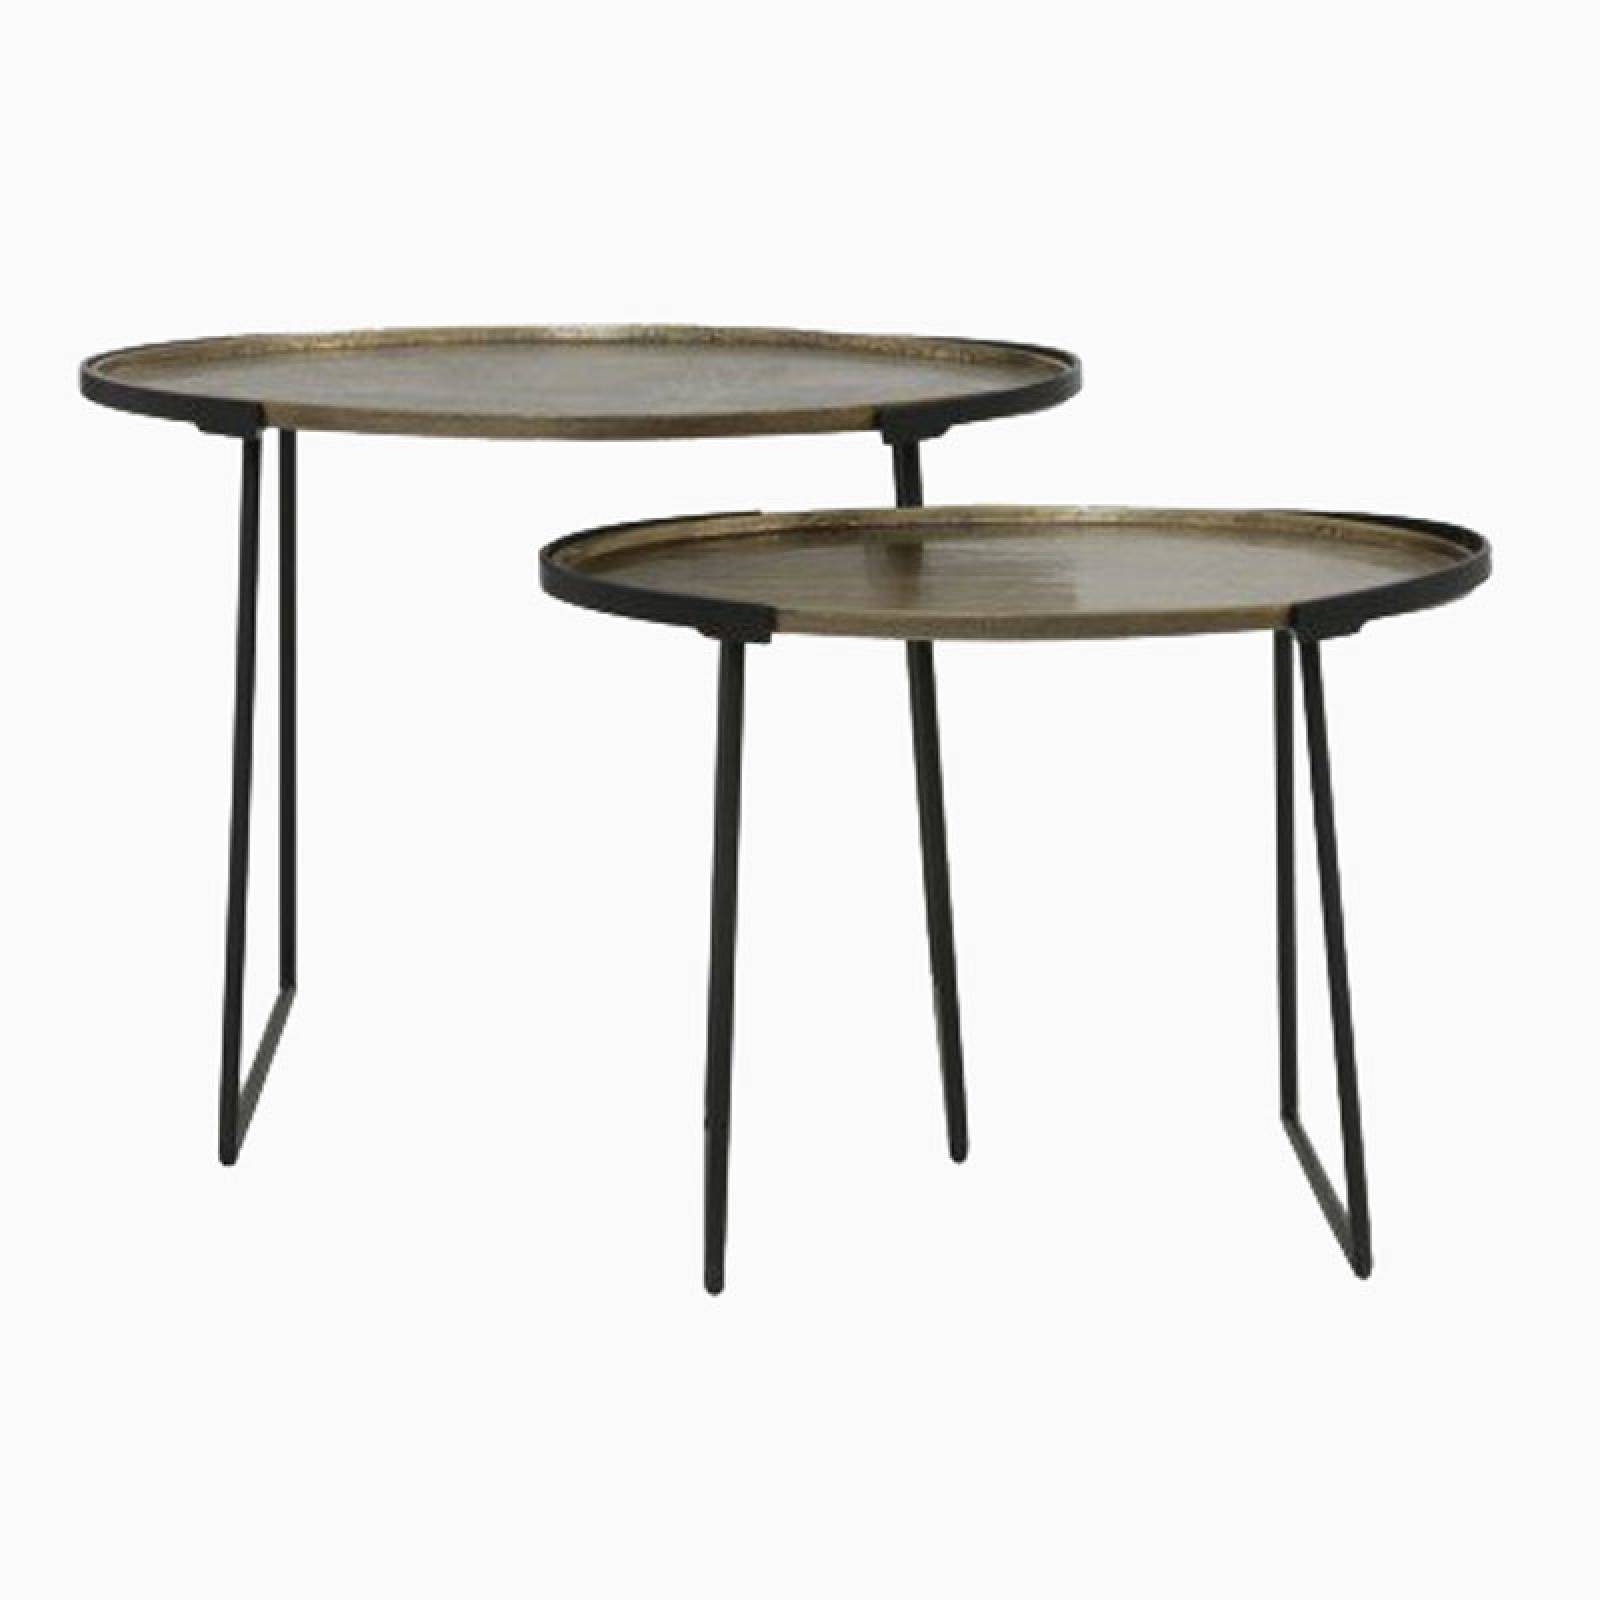 Pair Of Oval Nesting Side Tables In Antique Bronze